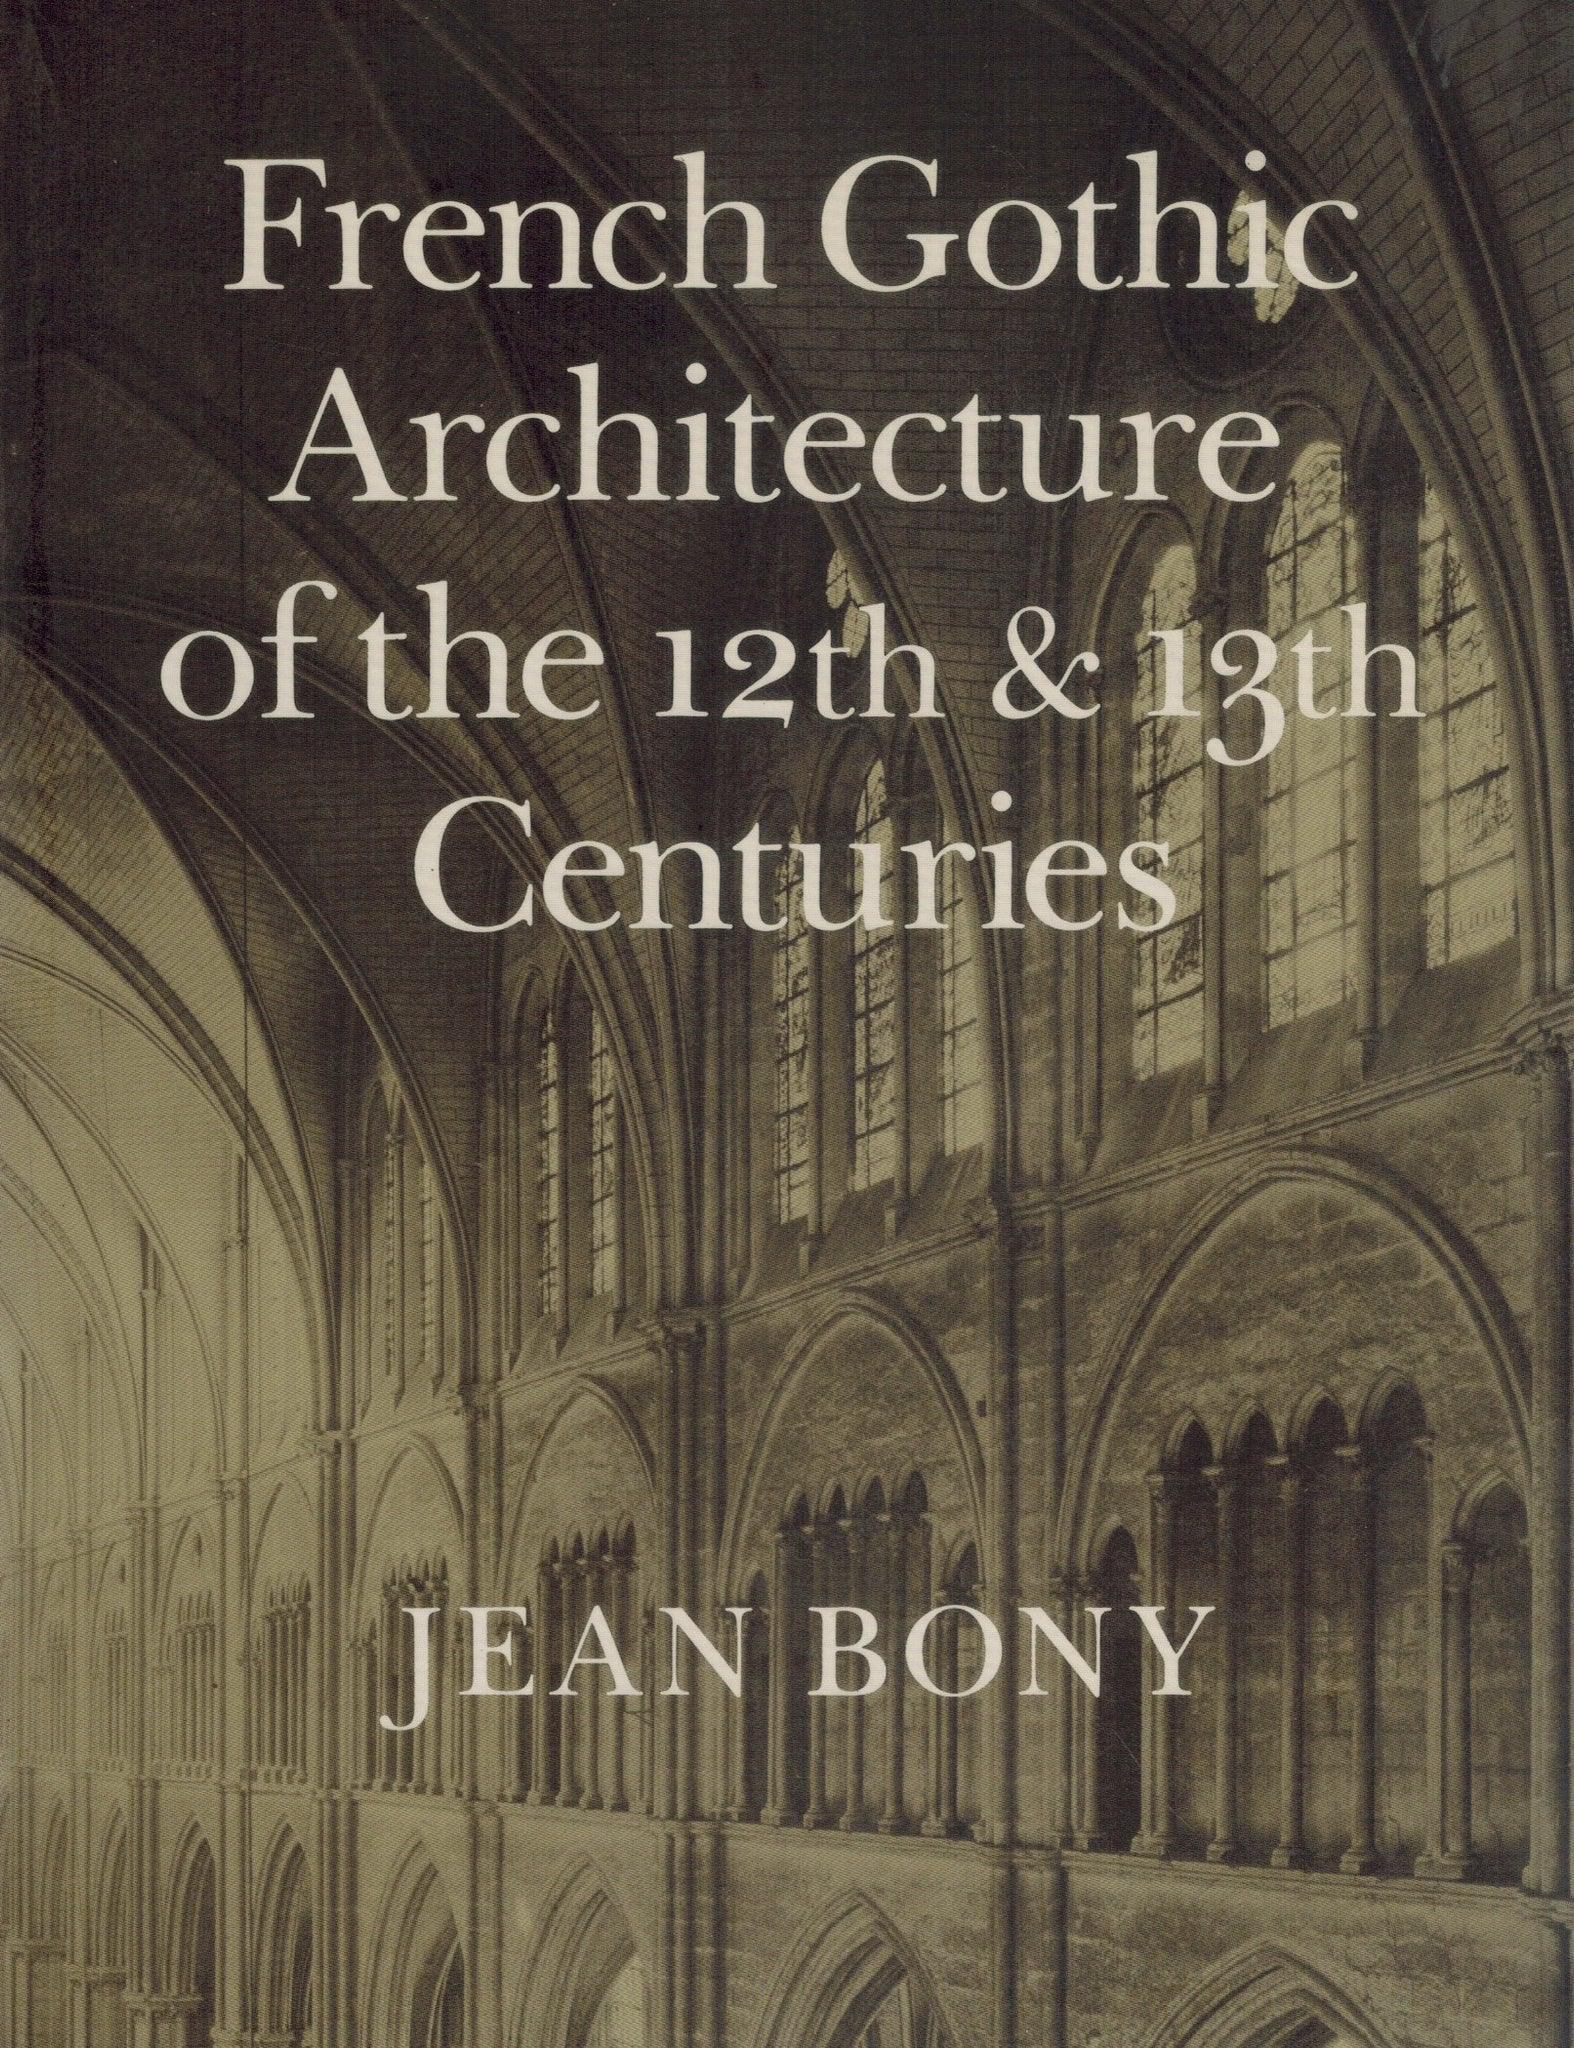 French Gothic Architecture of the 12th and 13th Centuries  by Bony, Jean